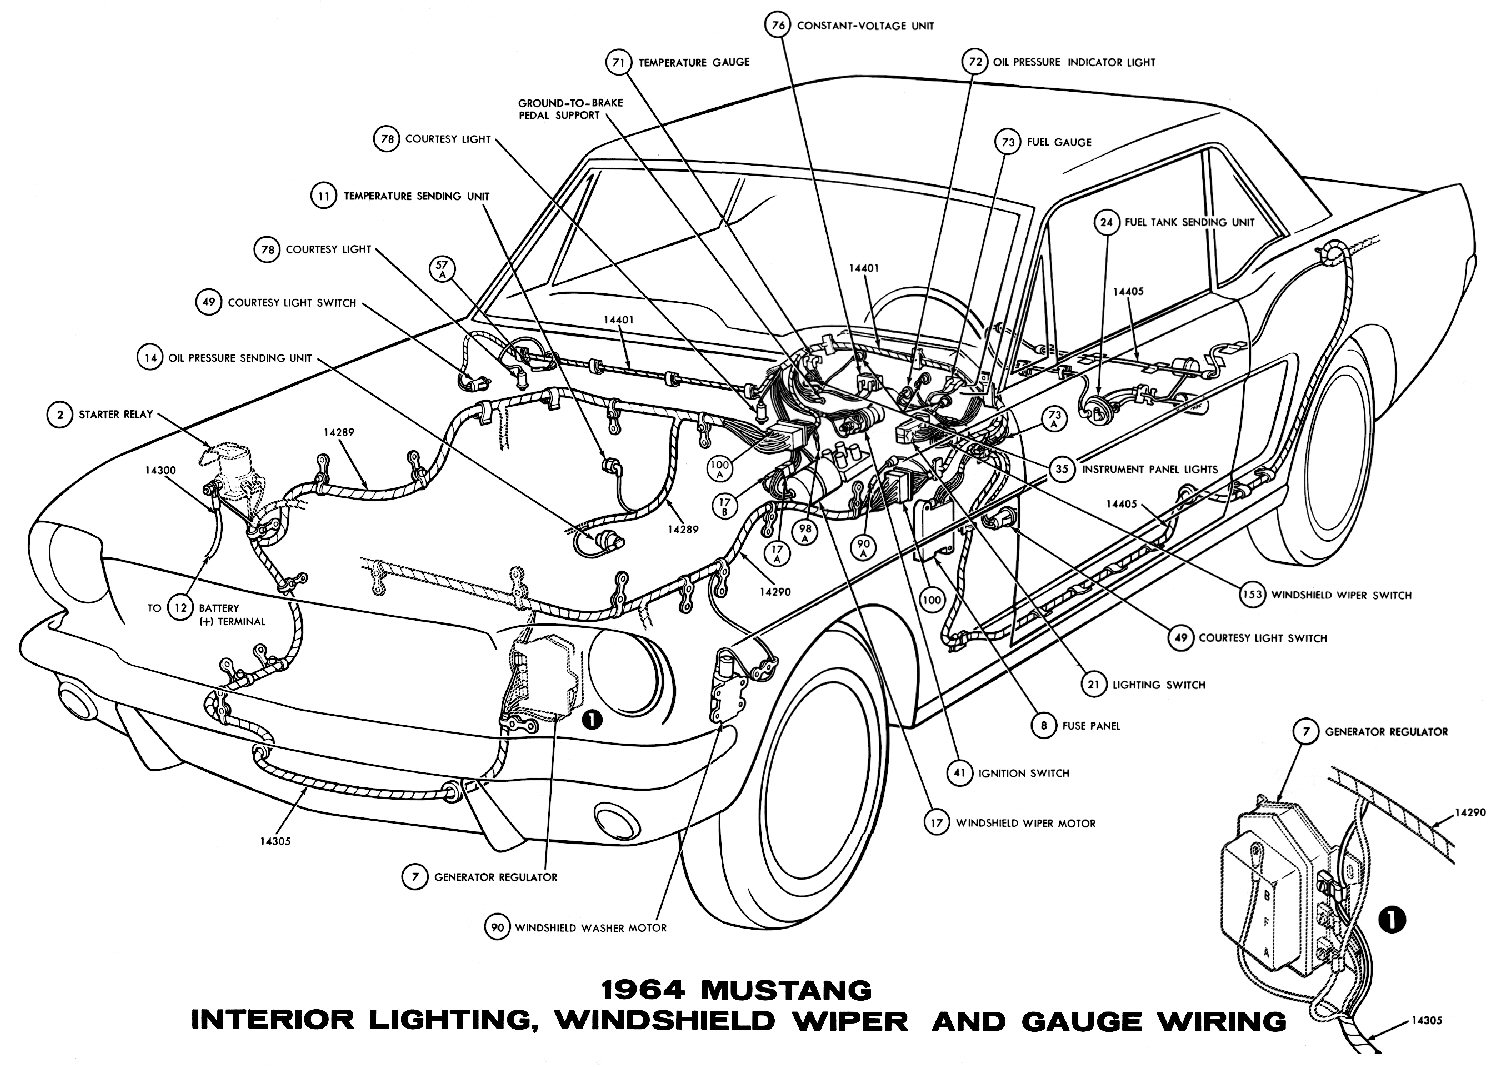 Awesome water temperature gauge wiring diagram festooning the wire 1964 mustang wiring diagrams average joe restoration asfbconference2016 Gallery